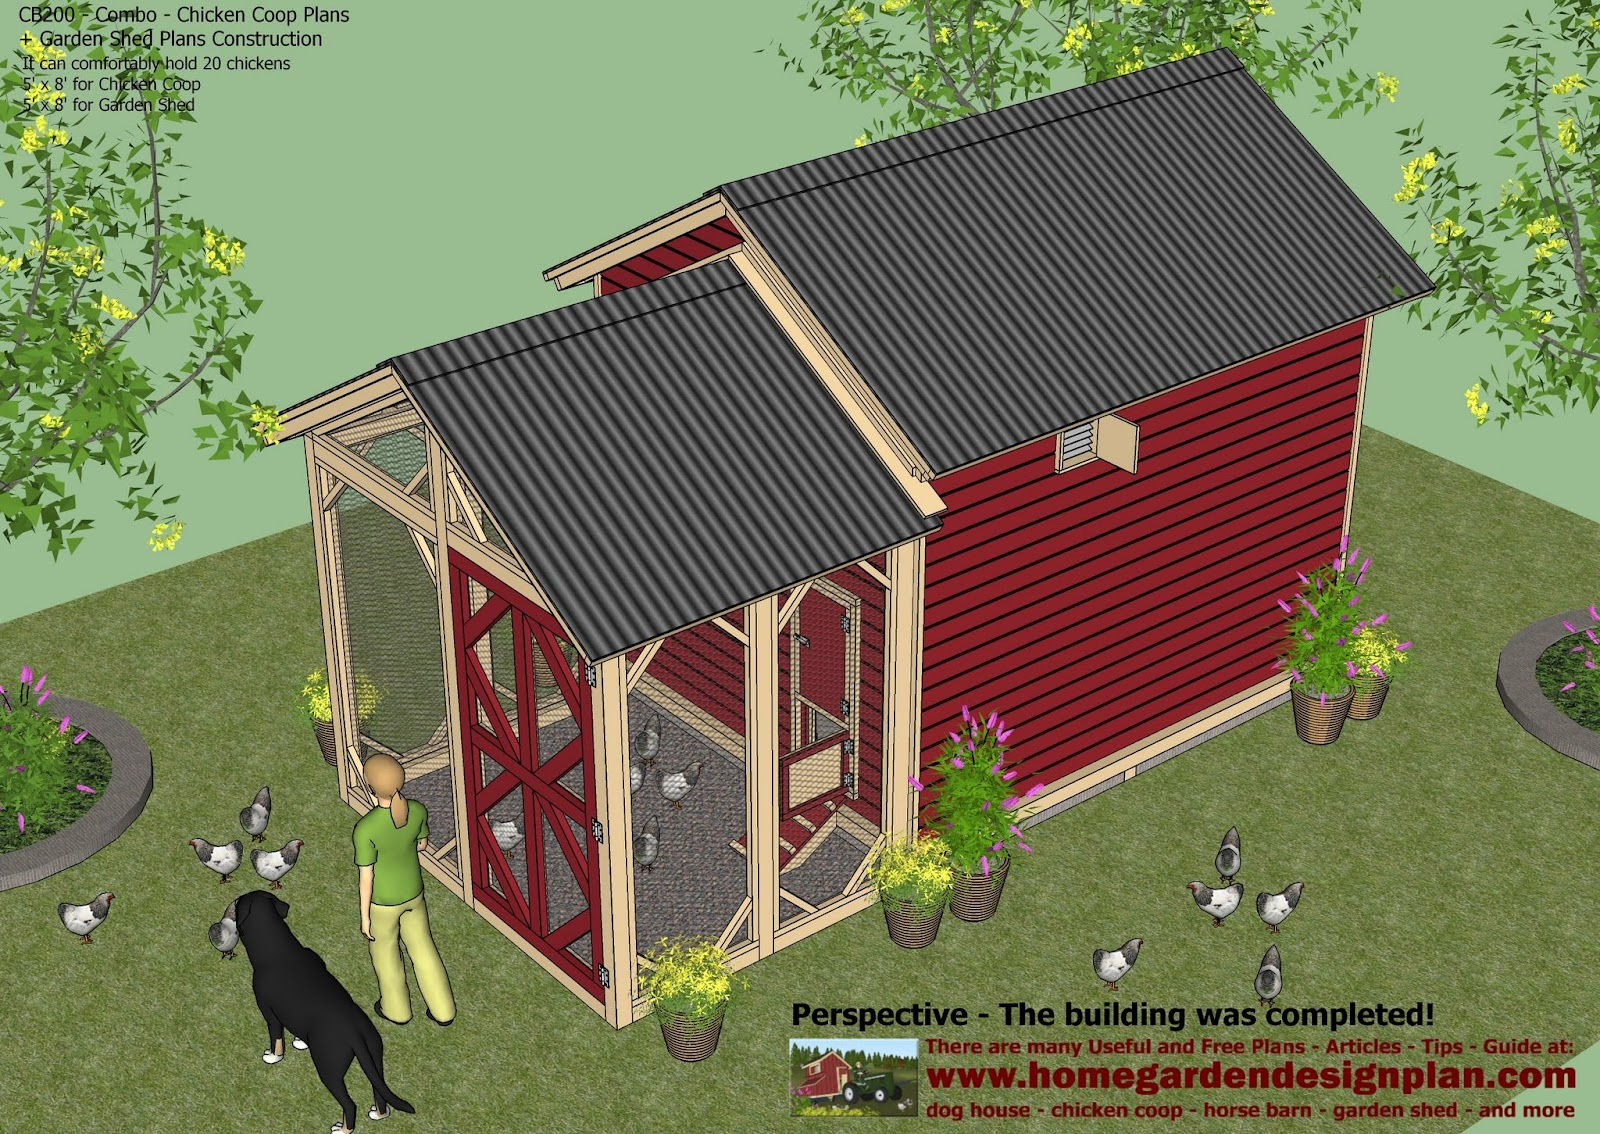 Home garden plans cb200 combo plans chicken coop for Garden shed designs 5